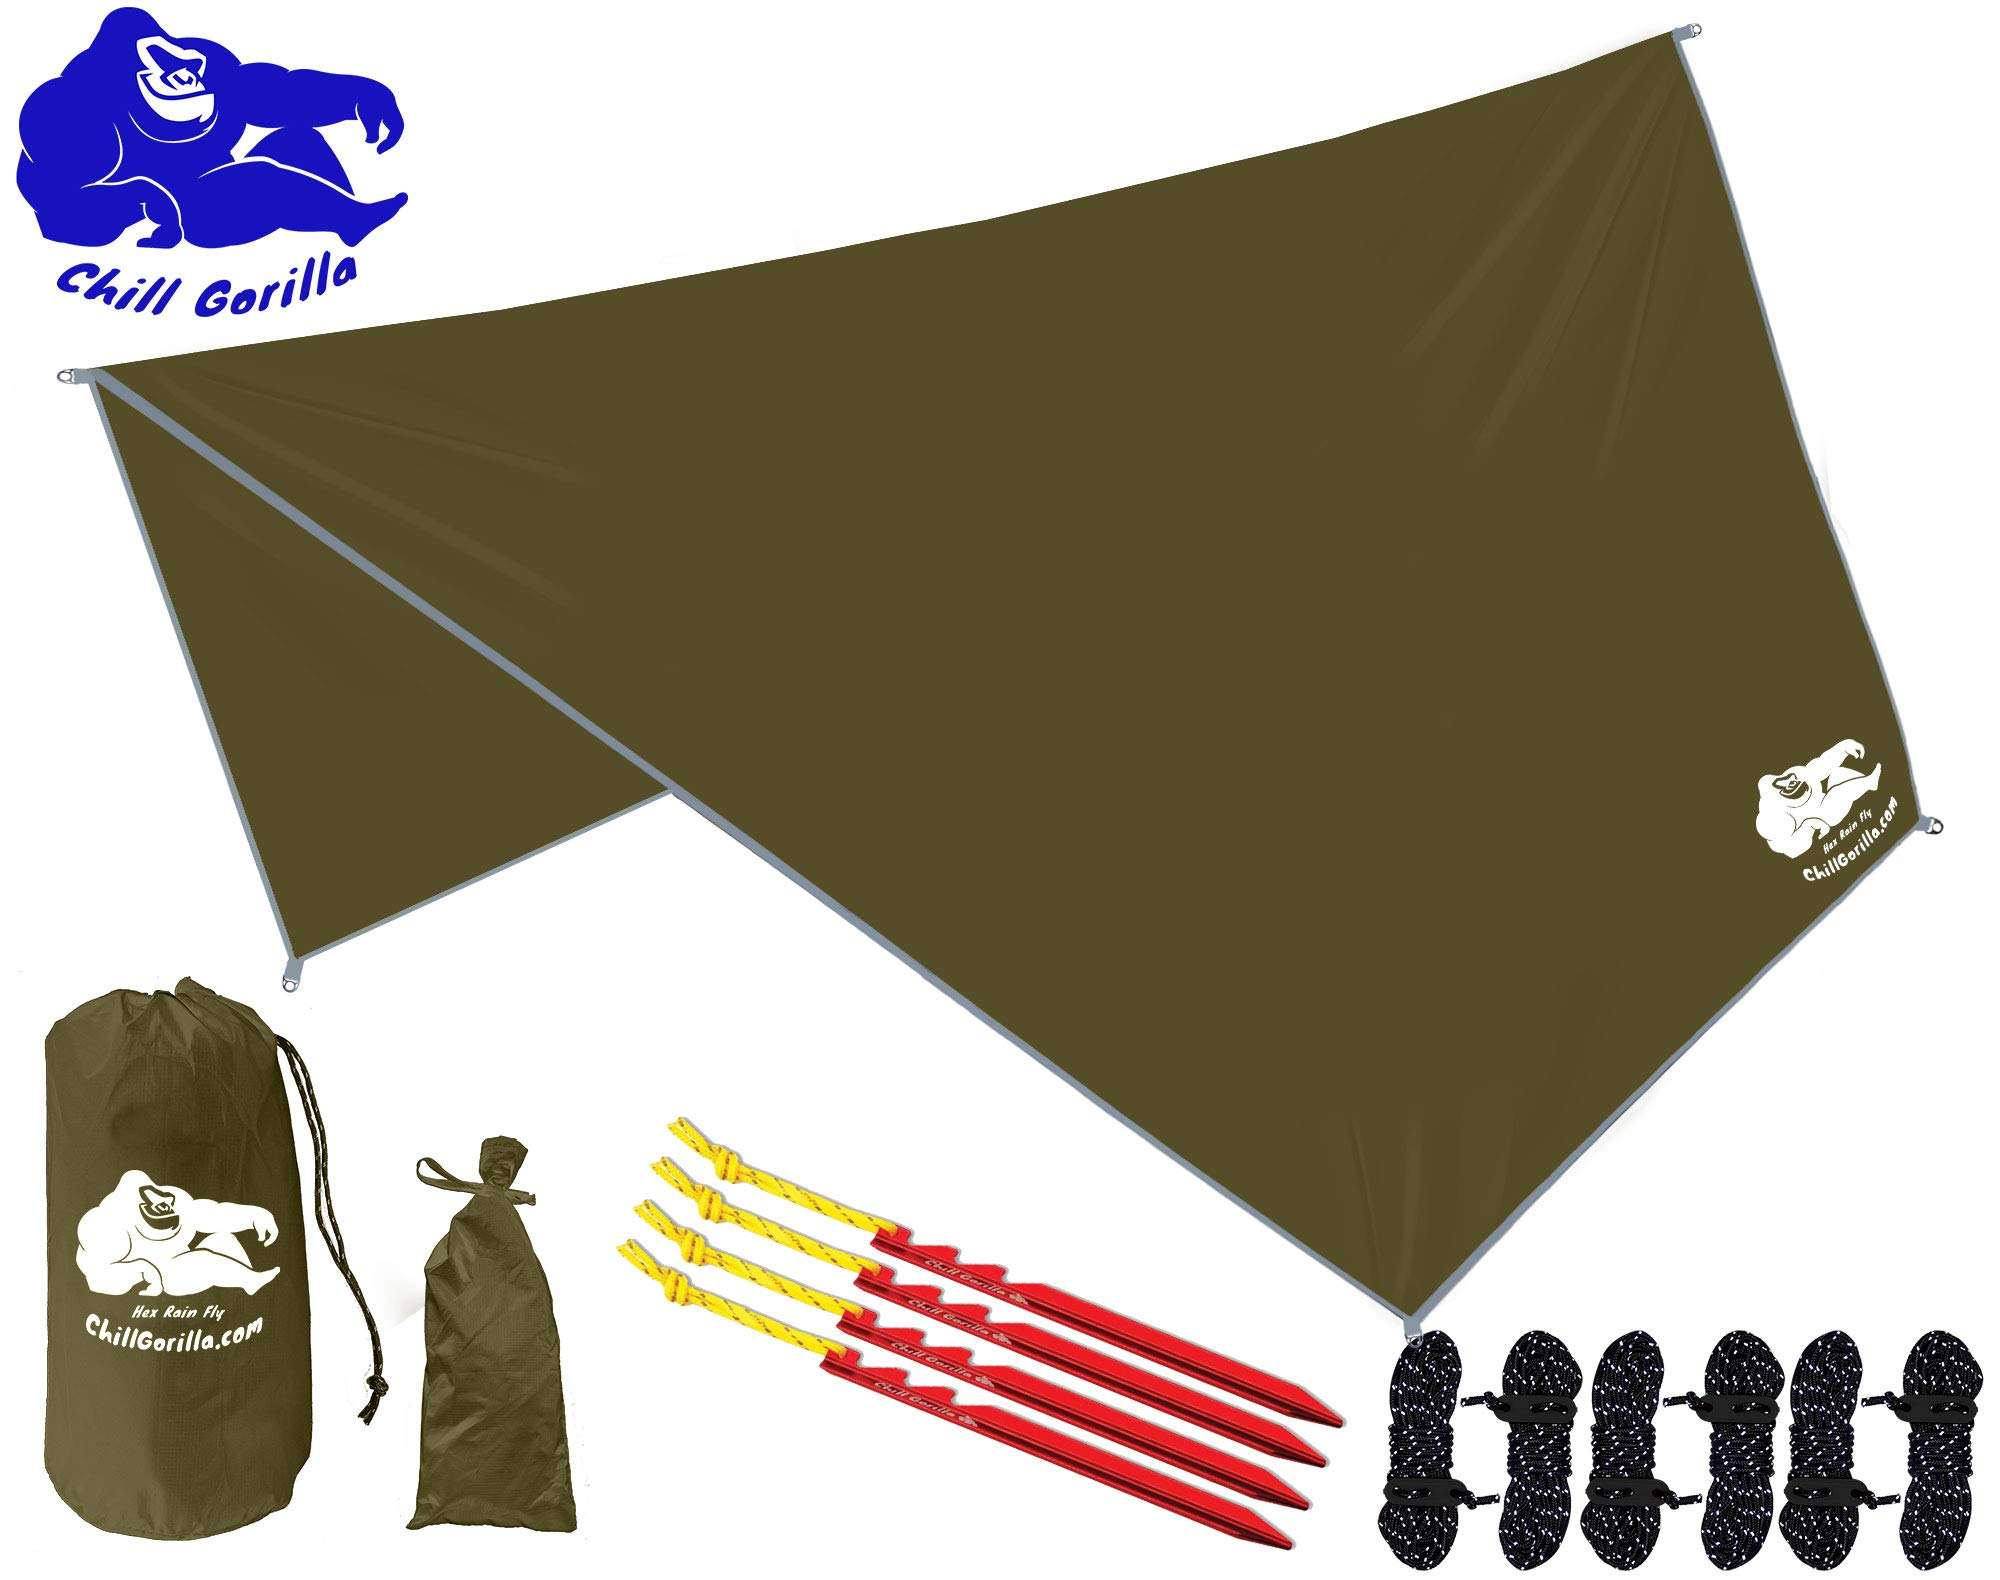 Chill Gorilla HEX Hammock Rain Fly Camping Tarp. Ripstop Nylon. 142'' Centerline. Stakes, Ropes & Tensioners Included. Camping Gear & Accessories. Perfect Hammock Tent. OD Green by Chill Gorilla